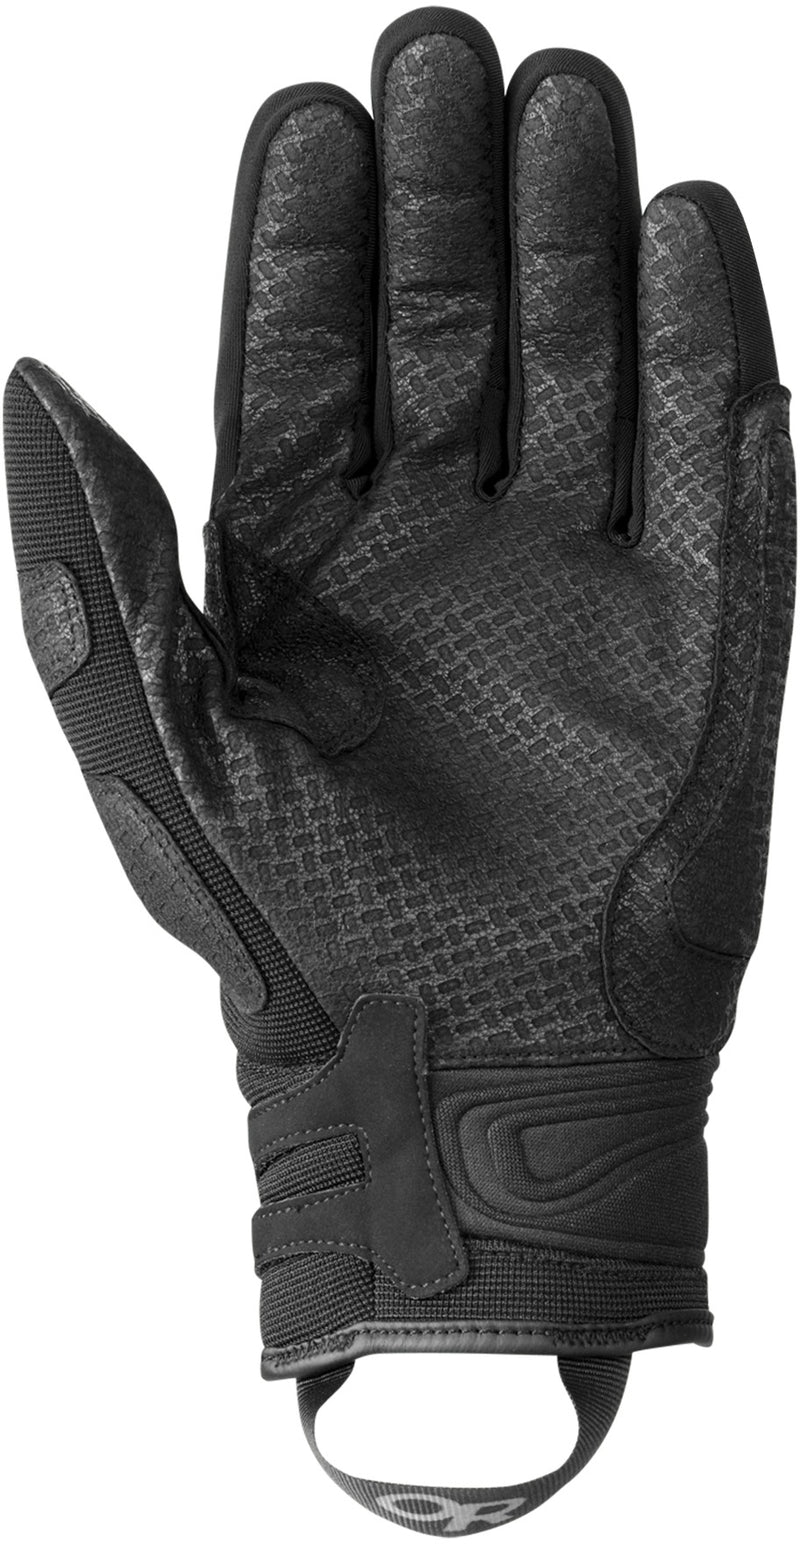 Outdoor Research Alibi II Gloves